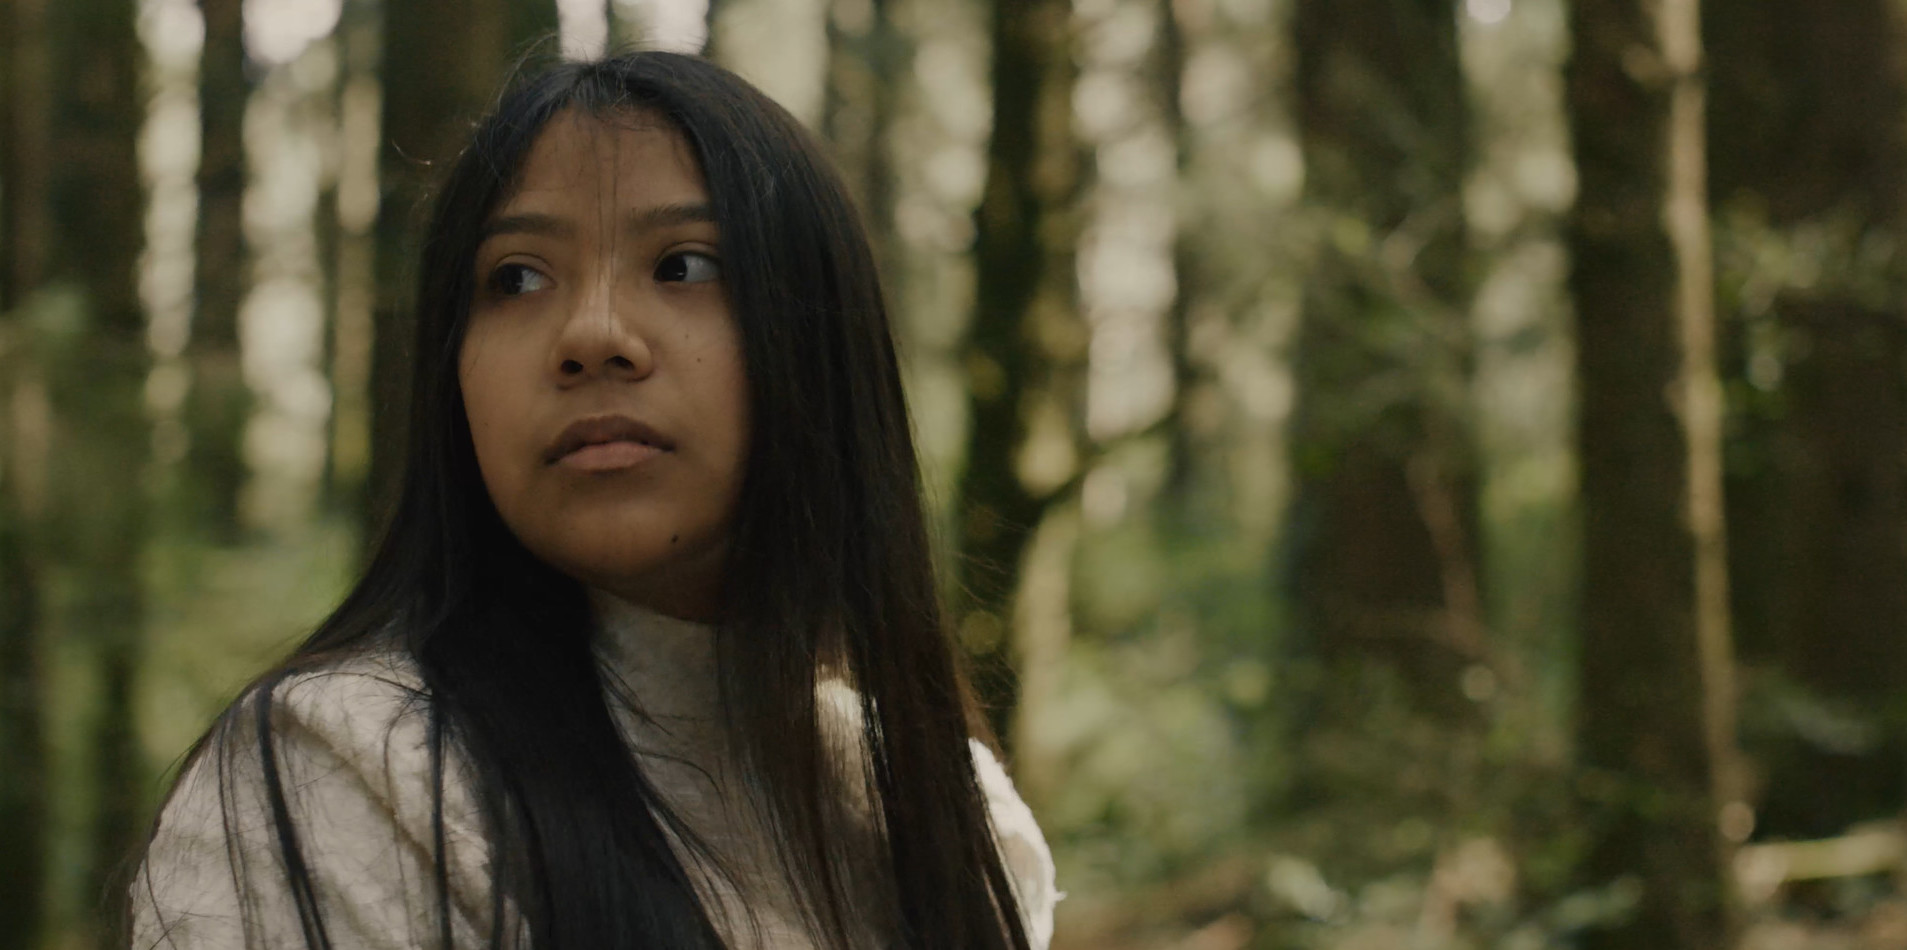 Douk - Director: Michelle Hernandez17 m, Live Short, USAA Native American family confronts the harsh reality of being split apart from their daughters.